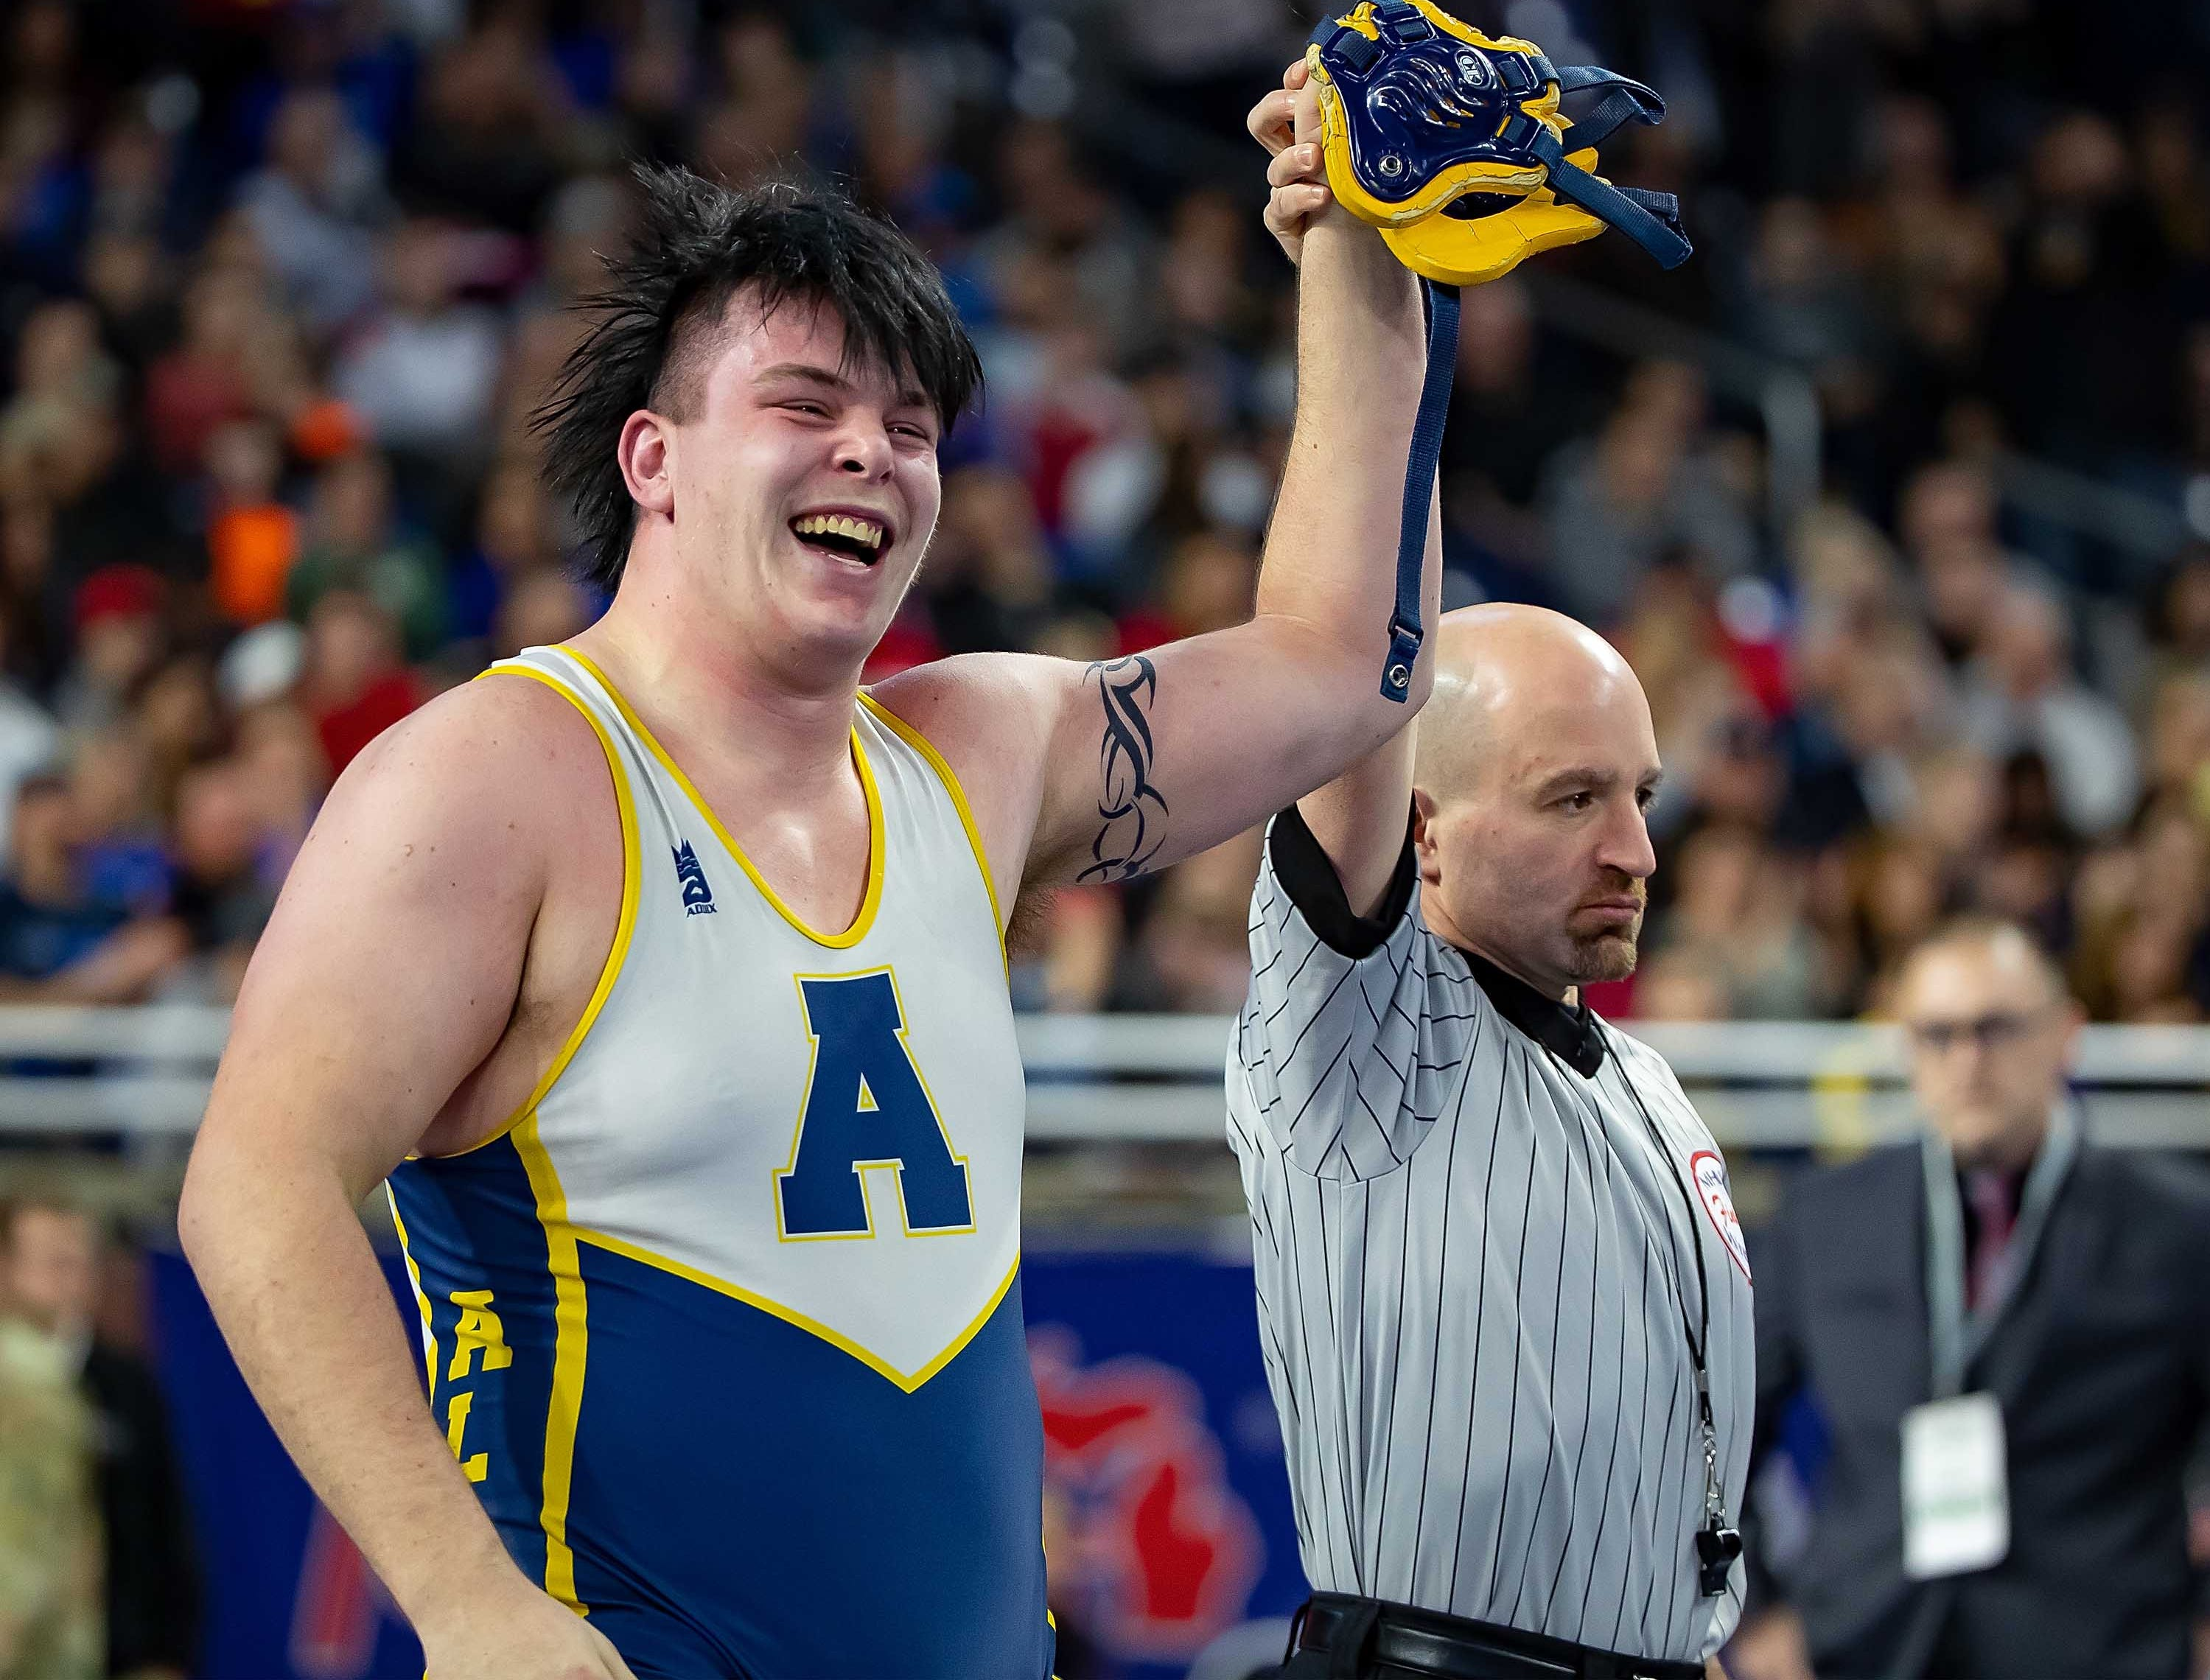 Mike Nykoriak of Algonac raises his arm in victory after defeating Brock Kuhn of Michigan Center during their 285-pound Division 3 championship match.